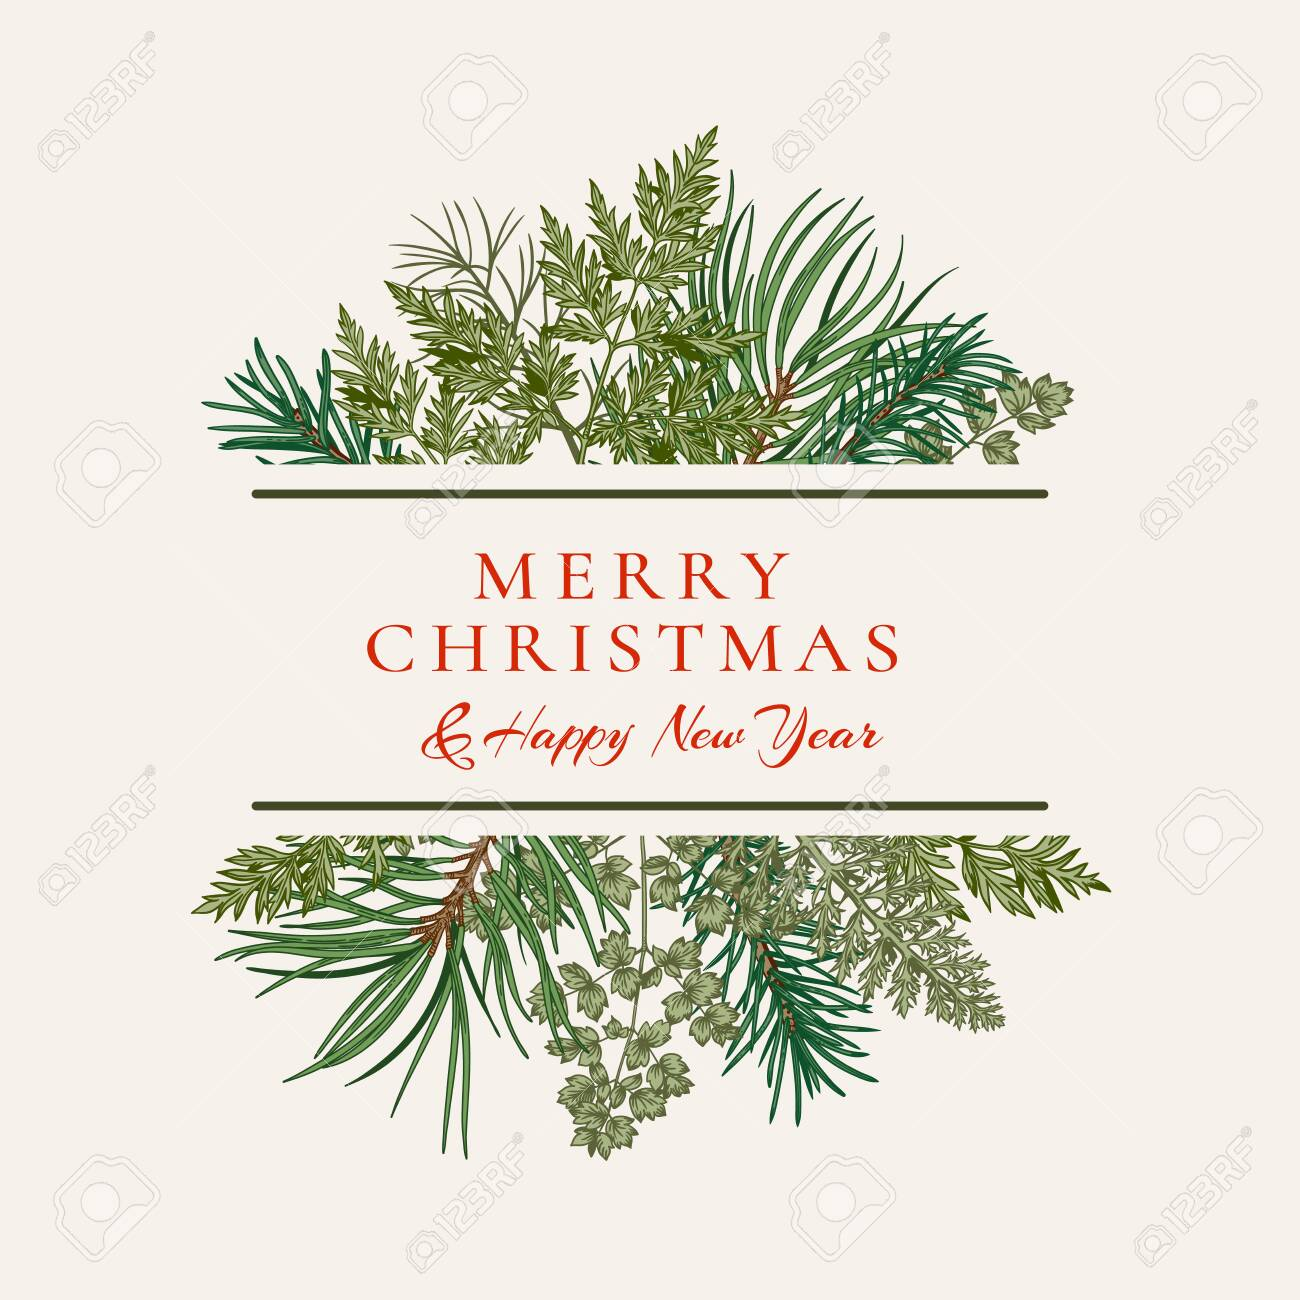 Ð¡hristmas card with bouquet with fir and pine branches, fern and leaves. Botanical illustration. Vector holiday card. Greenery. - 155852798